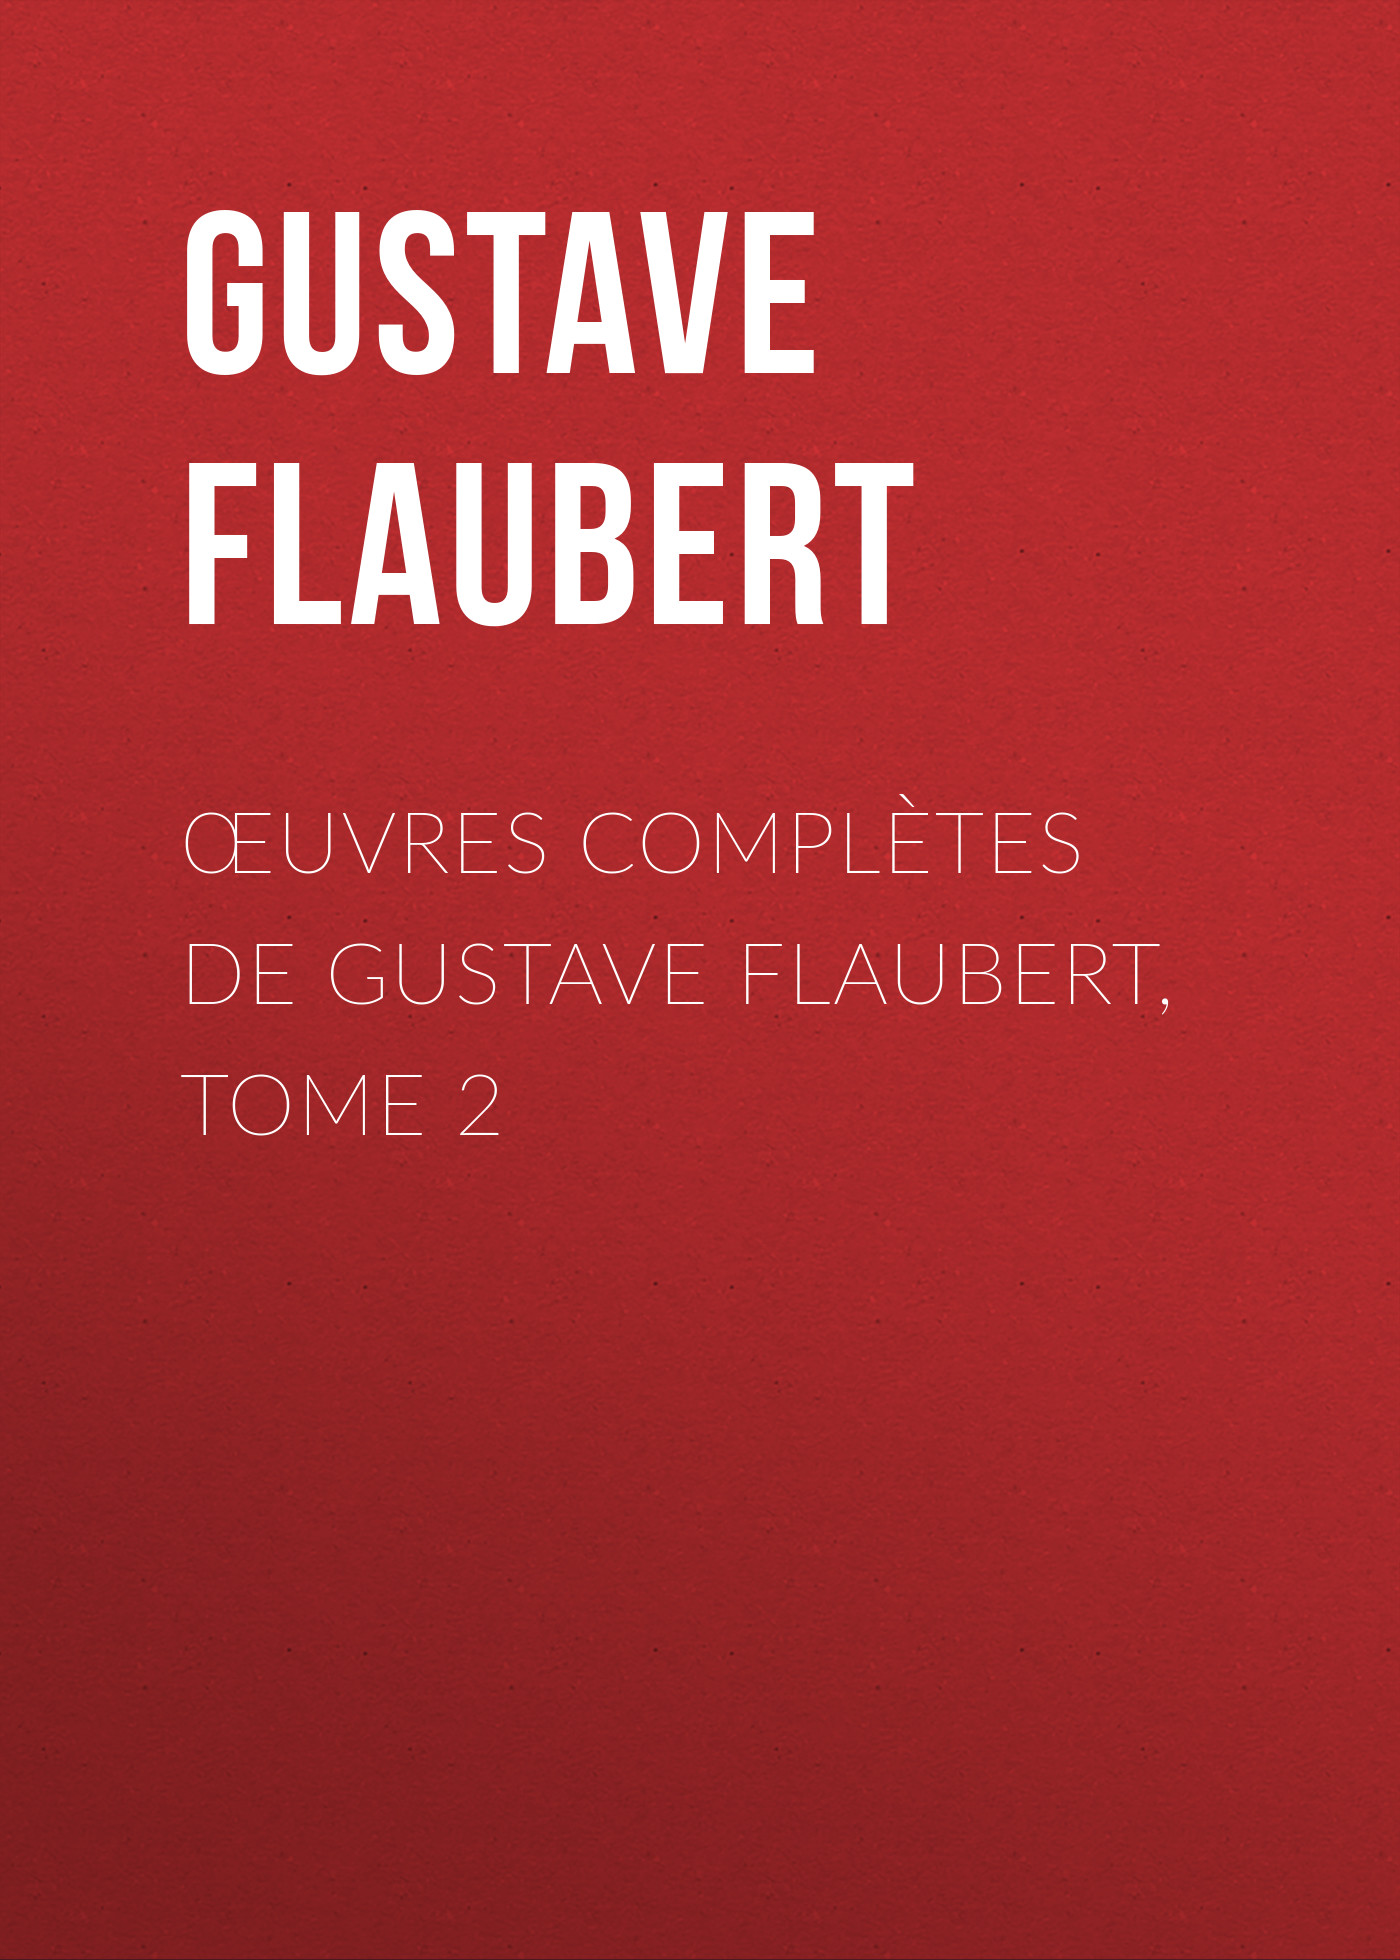 Gustave Flaubert Œuvres complètes de Gustave Flaubert, tome 2 flaubert gustave the complete works of gustave flaubert embracing romances travels comedies sketches and correspondence volume 10